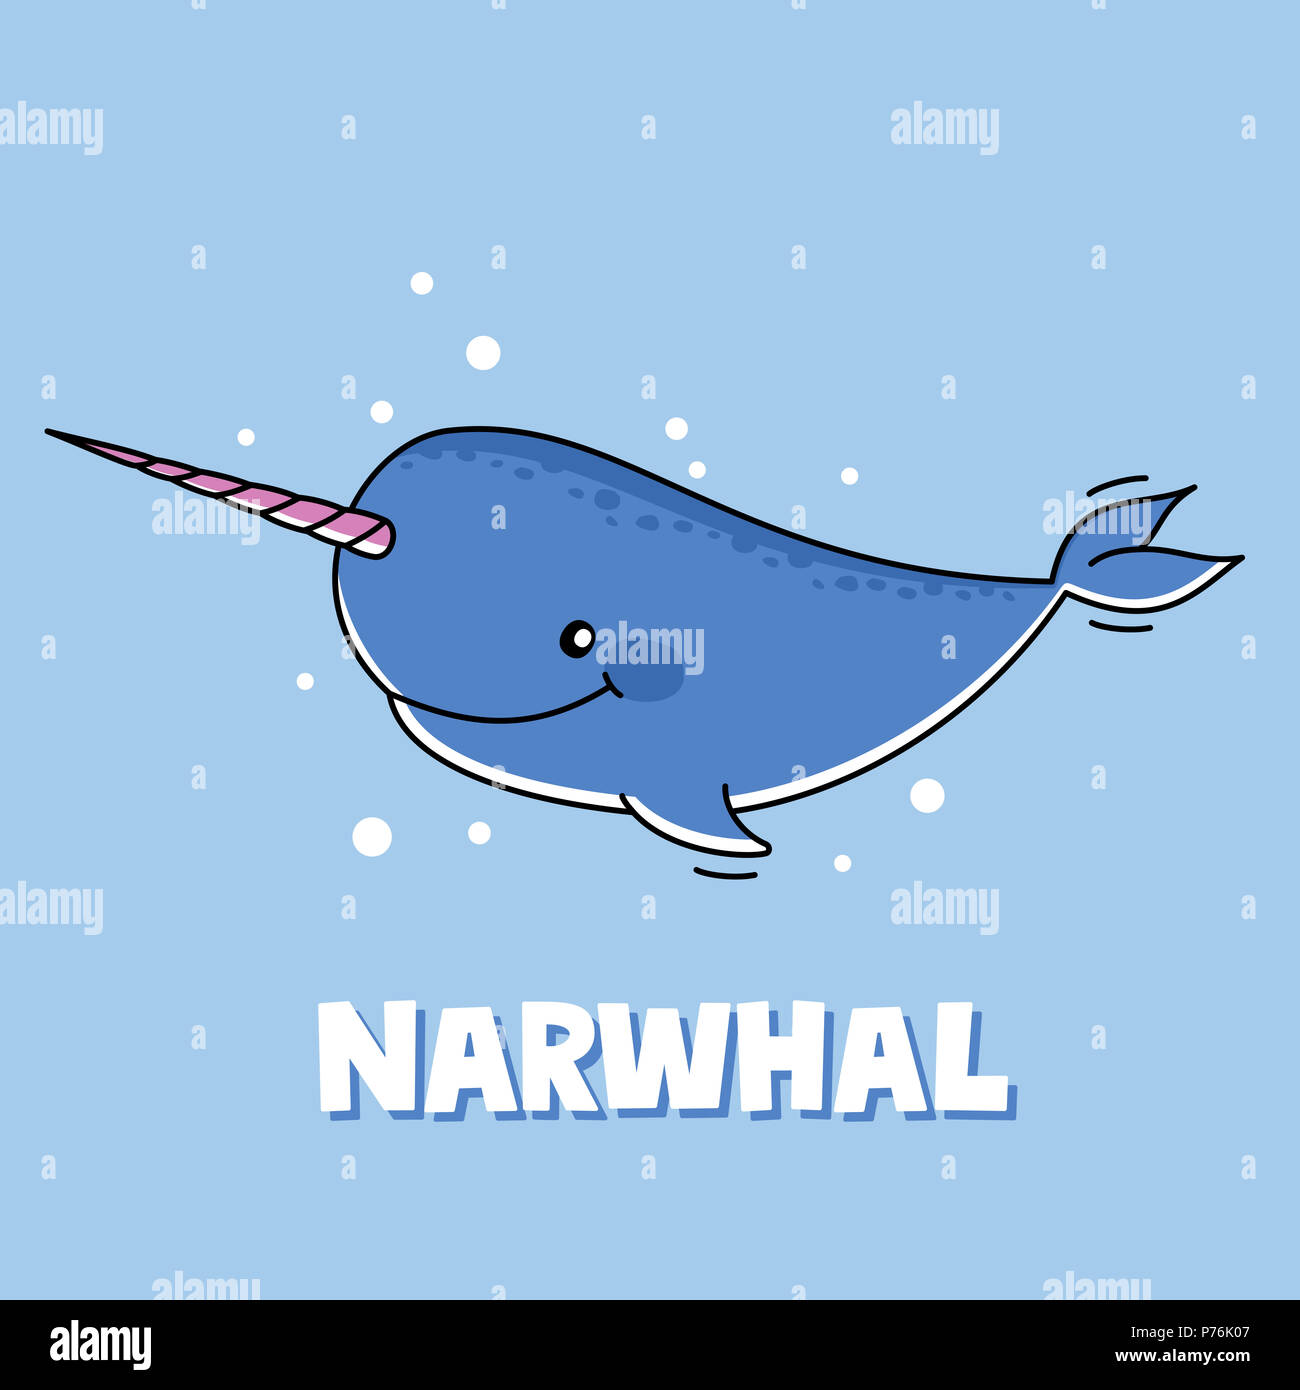 Cute Cartoon Narwhal: Adorable Sea Life Illustration For Children